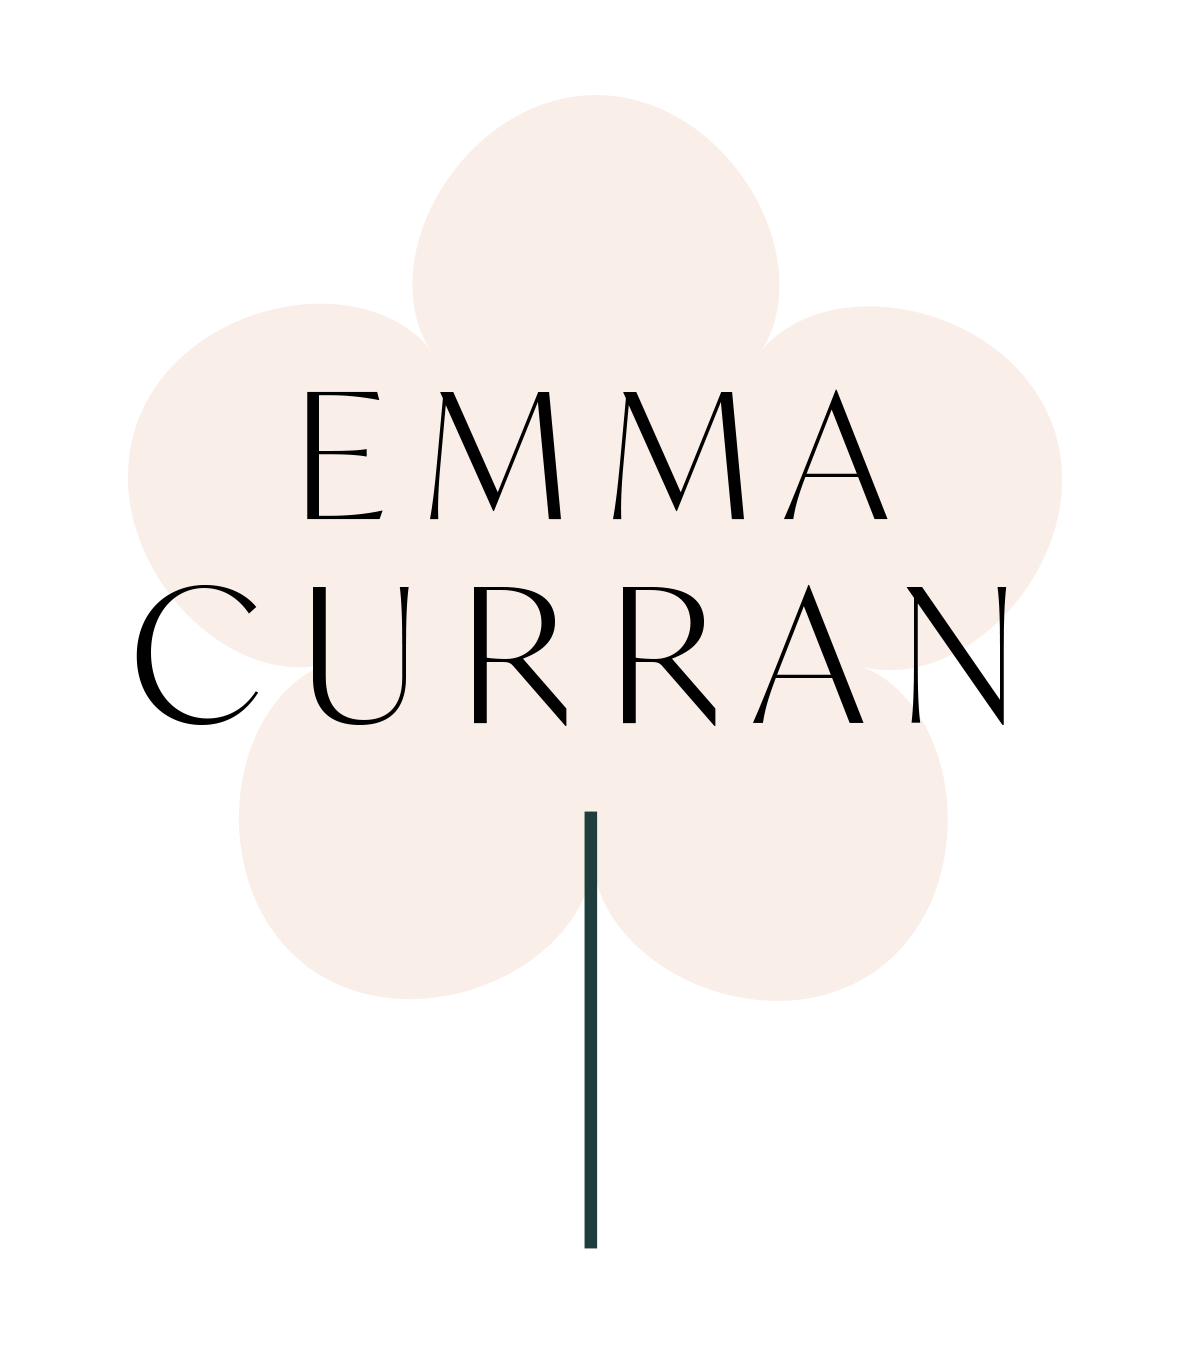 Emma Curran | Design, Travel & Style in Essex, London & Beyond